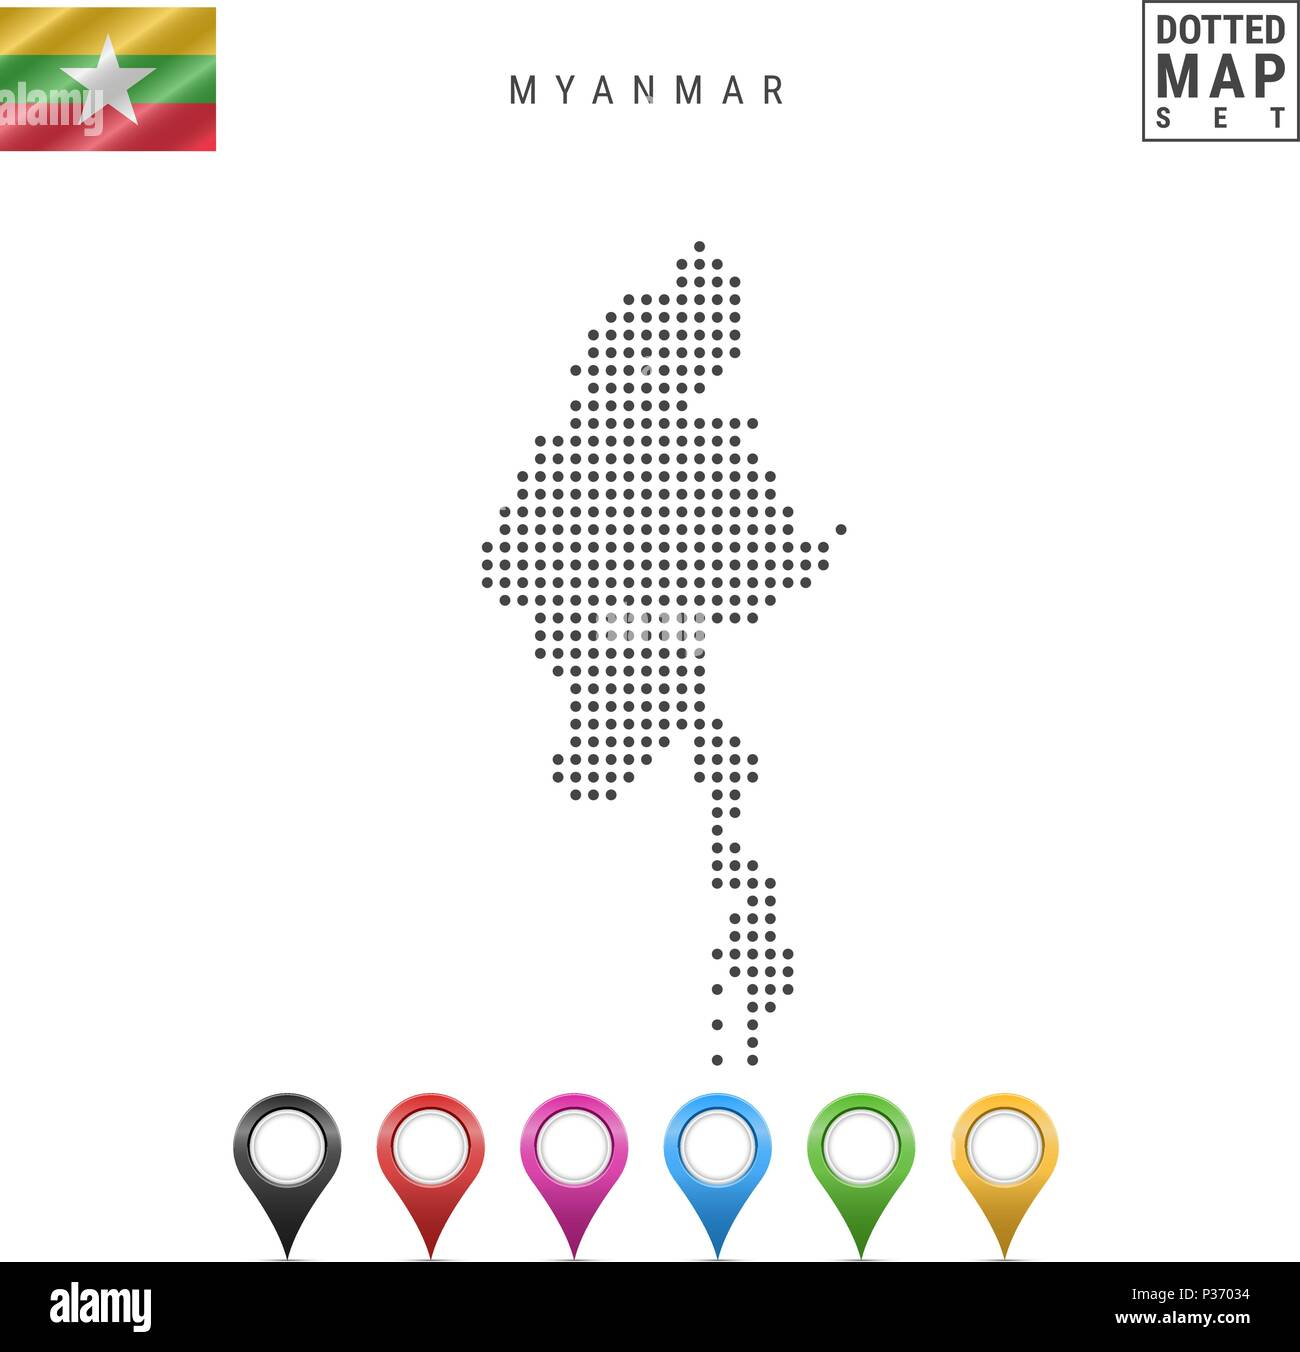 Vector Dotted Map of Myanmar. Simple Silhouette of Myanmar. National Flag of Myanmar. Set of Multicolored Map Markers - Stock Vector